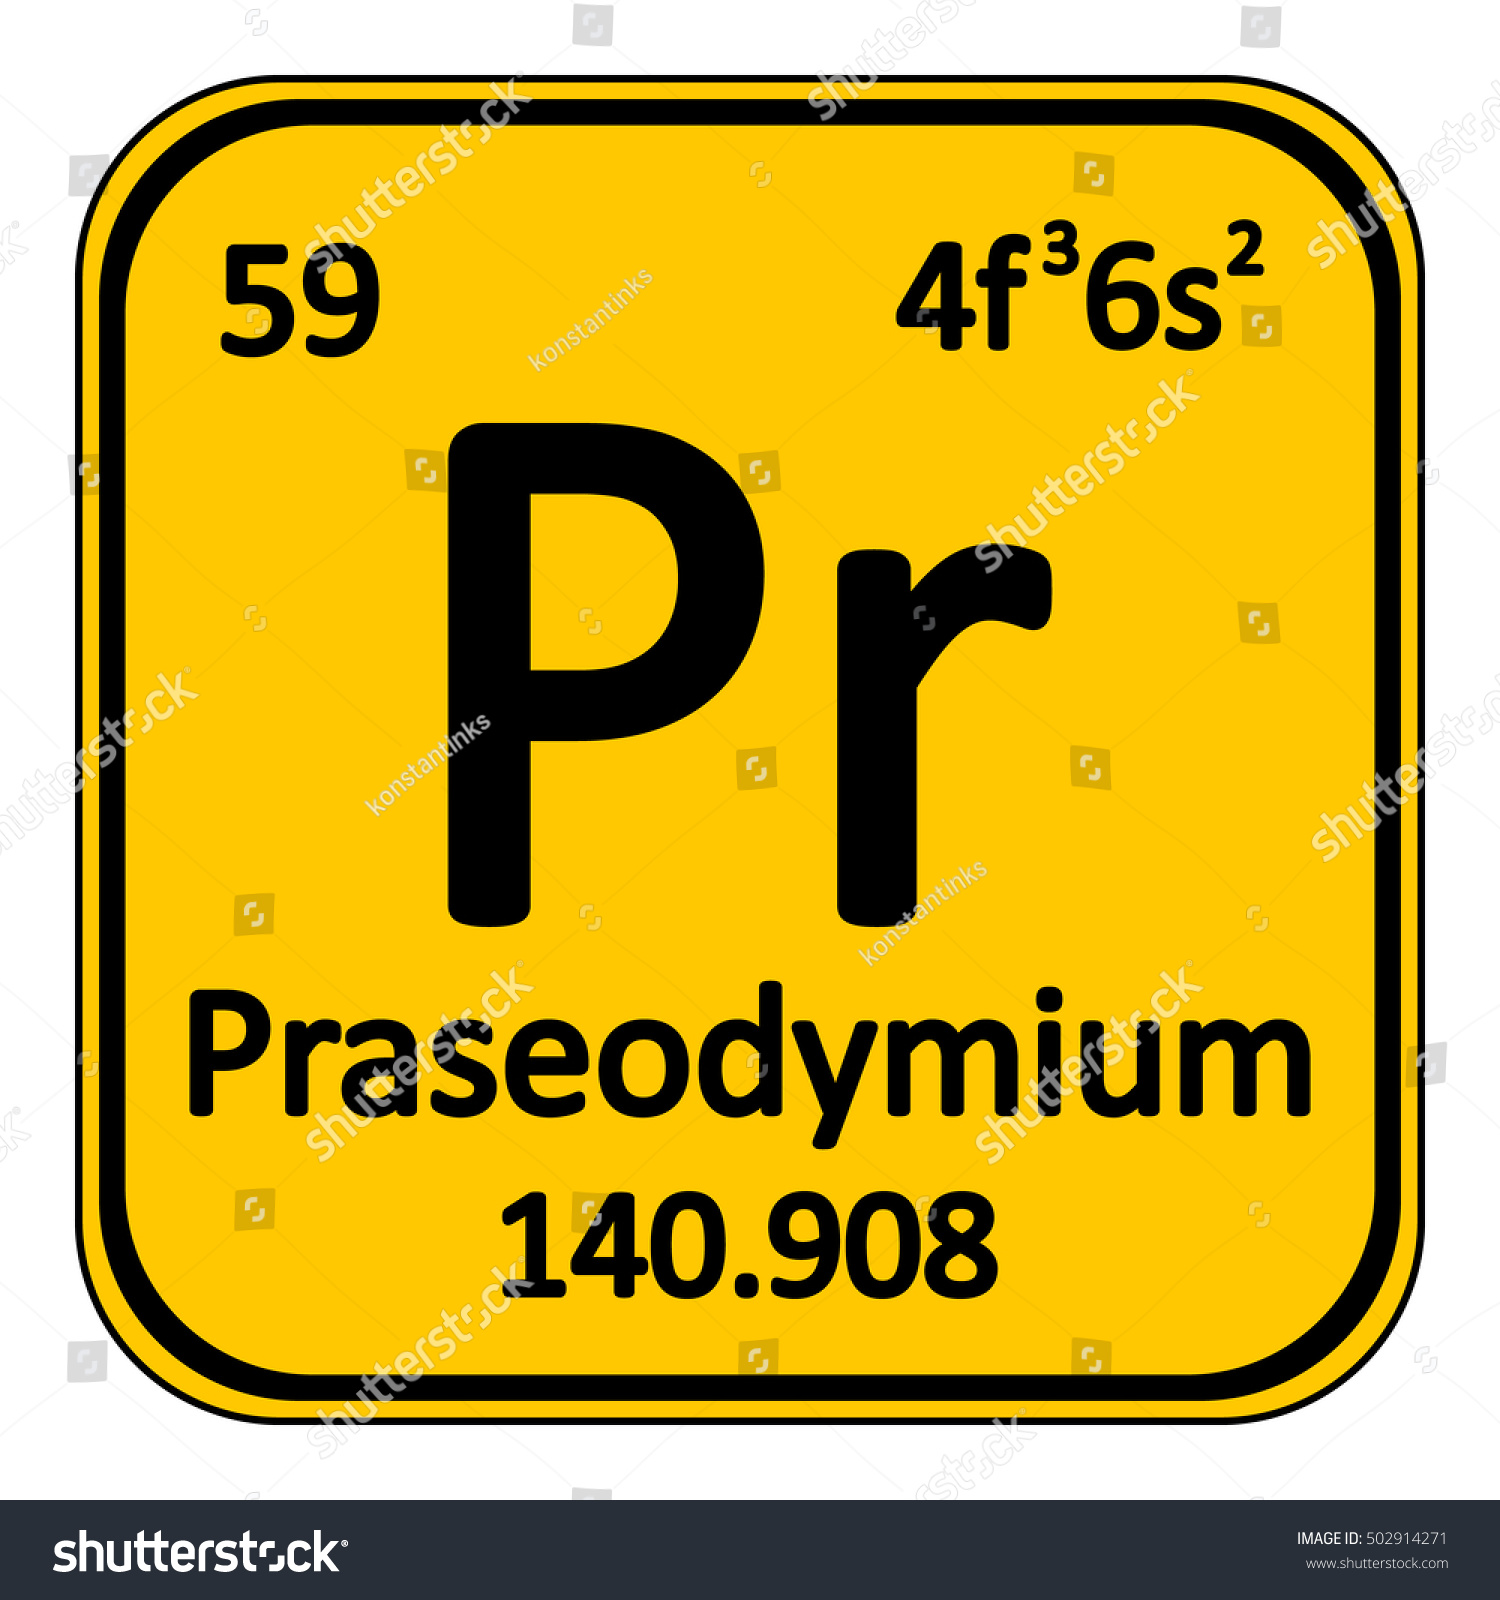 Barium on periodic table images periodic table images 26th element periodic table choice image periodic table images carbon periodic table square gallery periodic table gamestrikefo Image collections